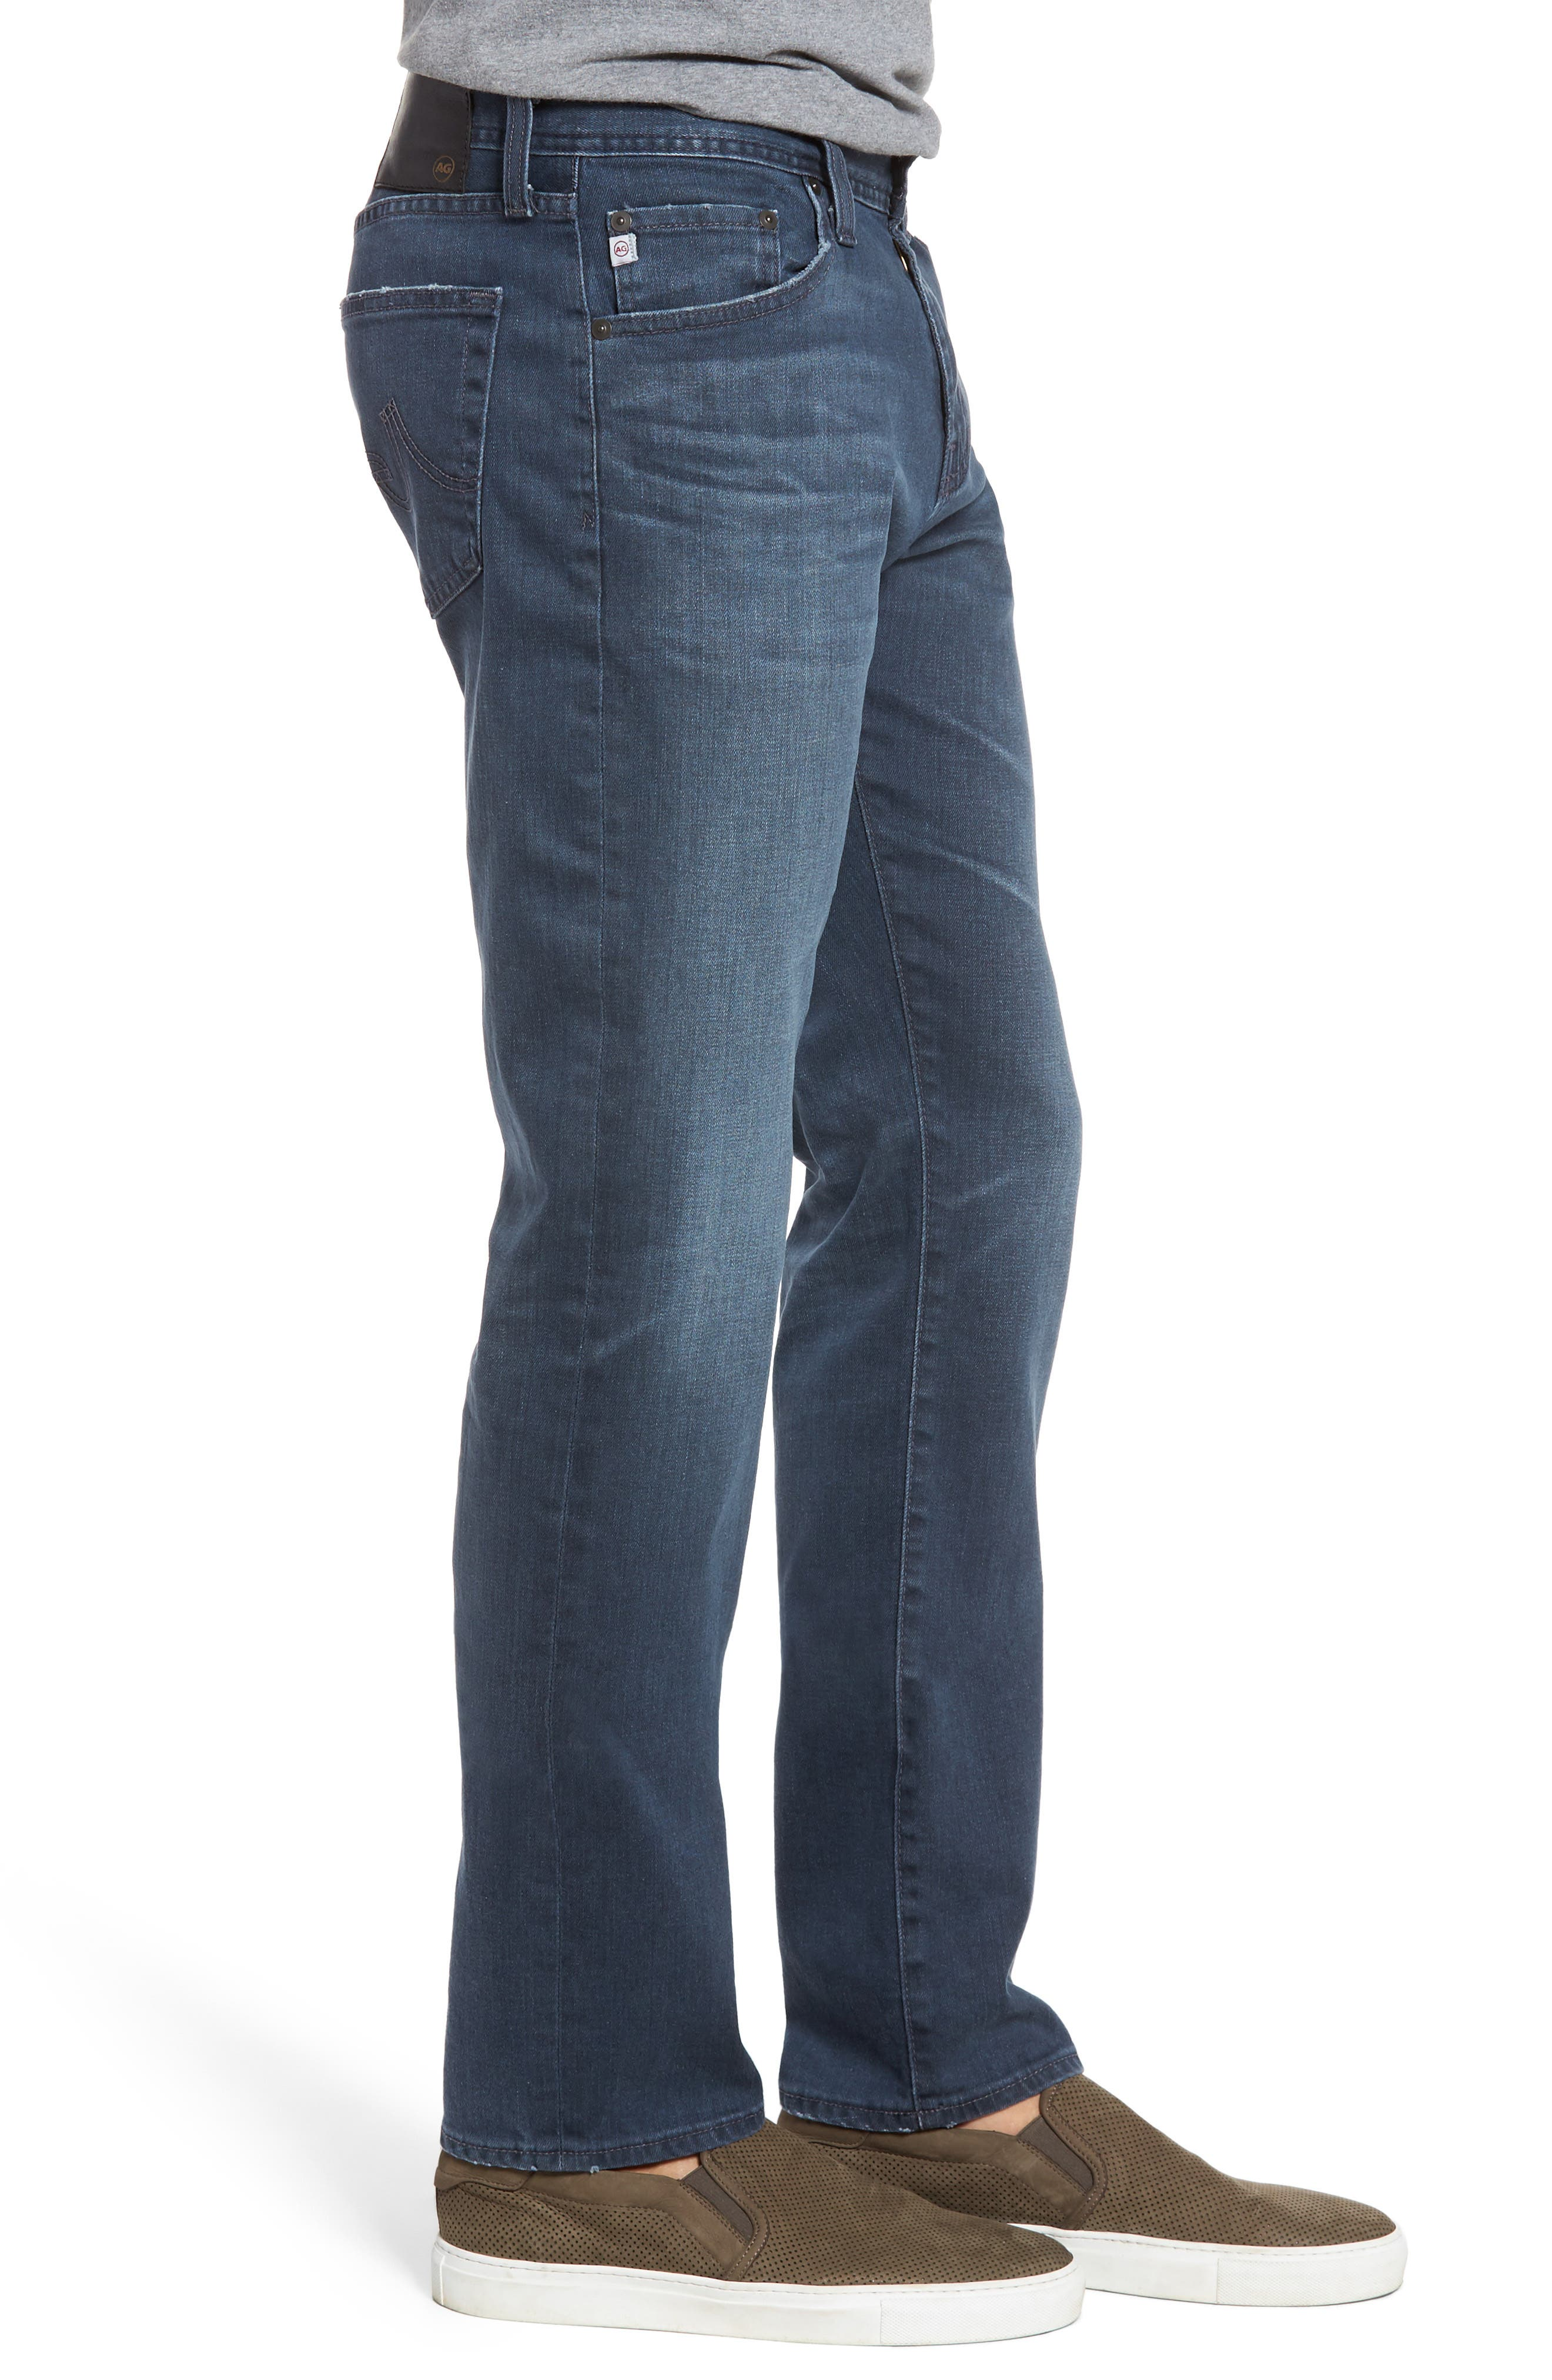 Graduate Slim Straight Leg Jeans,                             Alternate thumbnail 3, color,                             7 Years Blue Peril